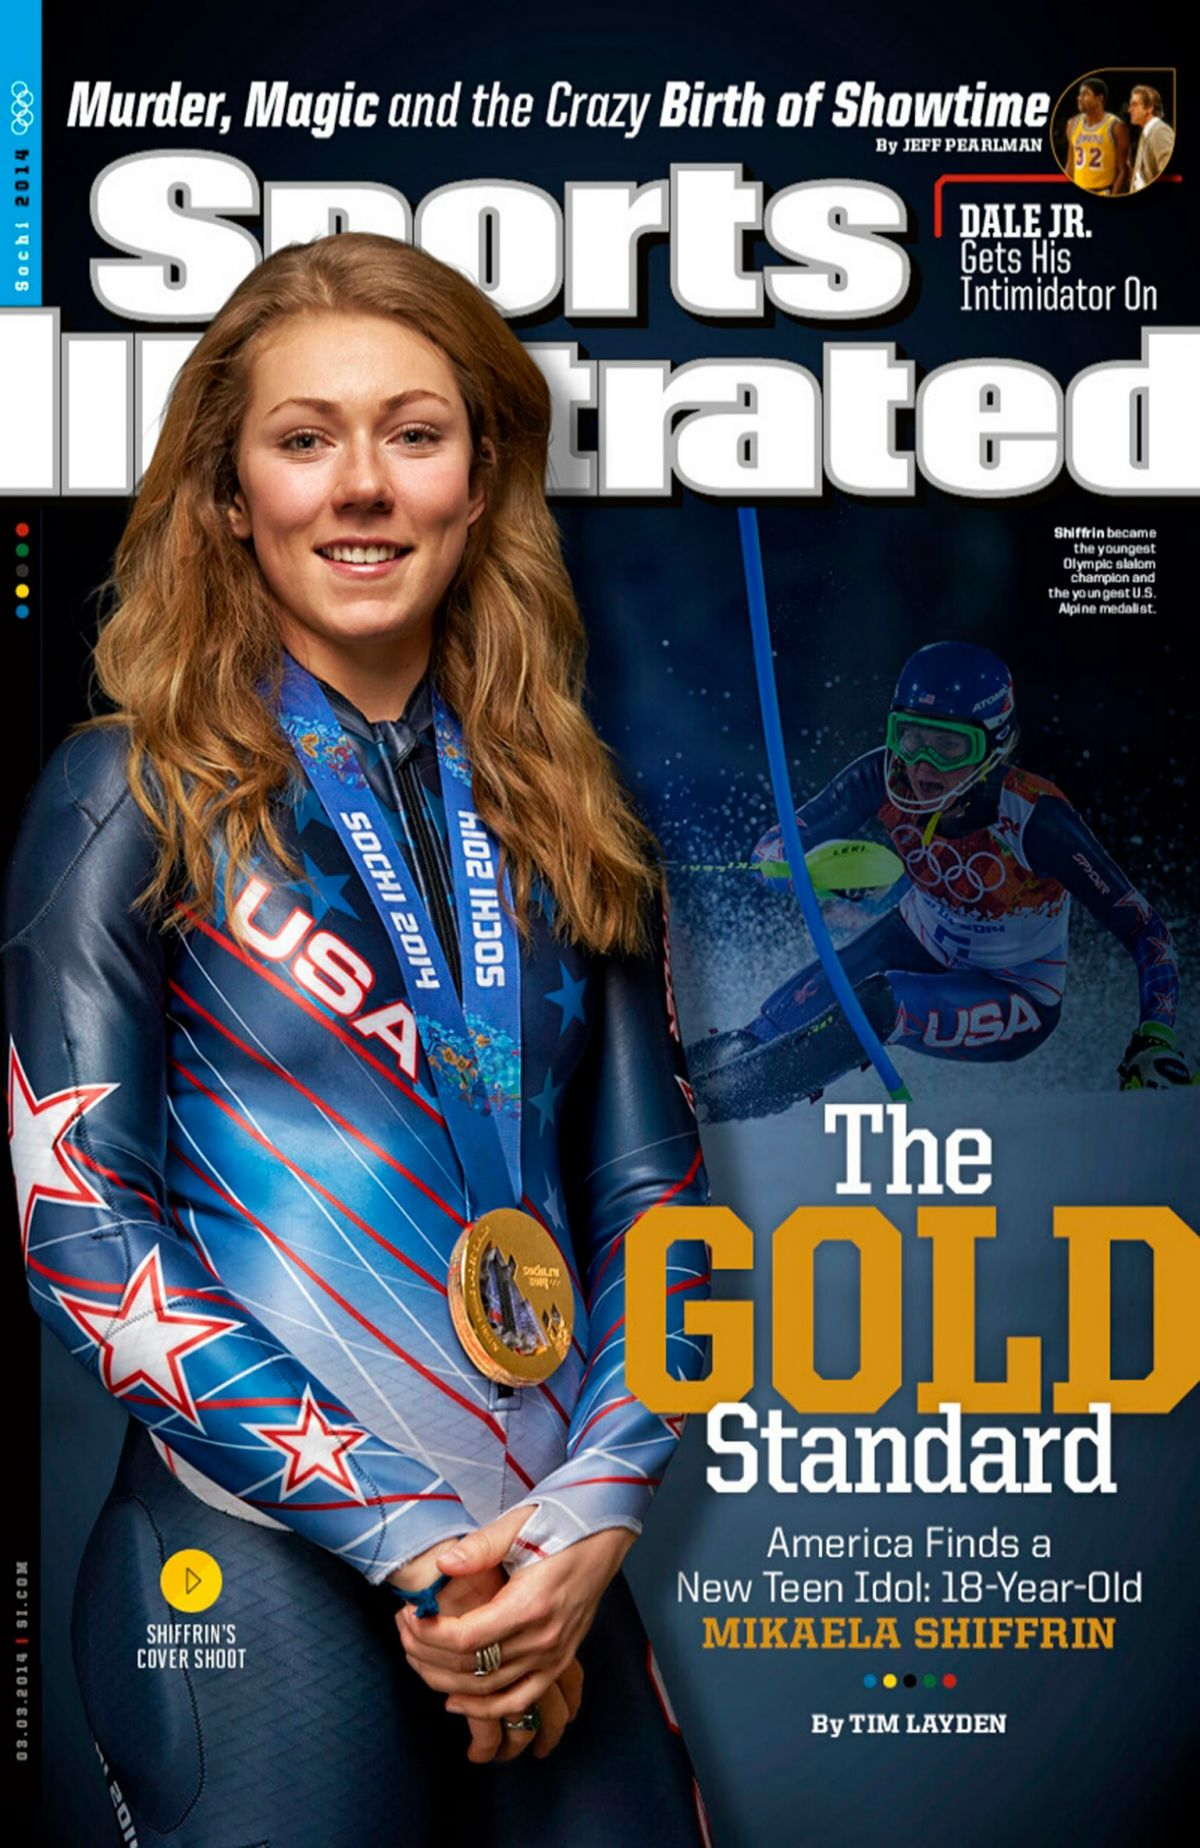 MIKAELA SHIFFRIN on the Cover of Sports Illustrated Magazine, March 2014 Issue